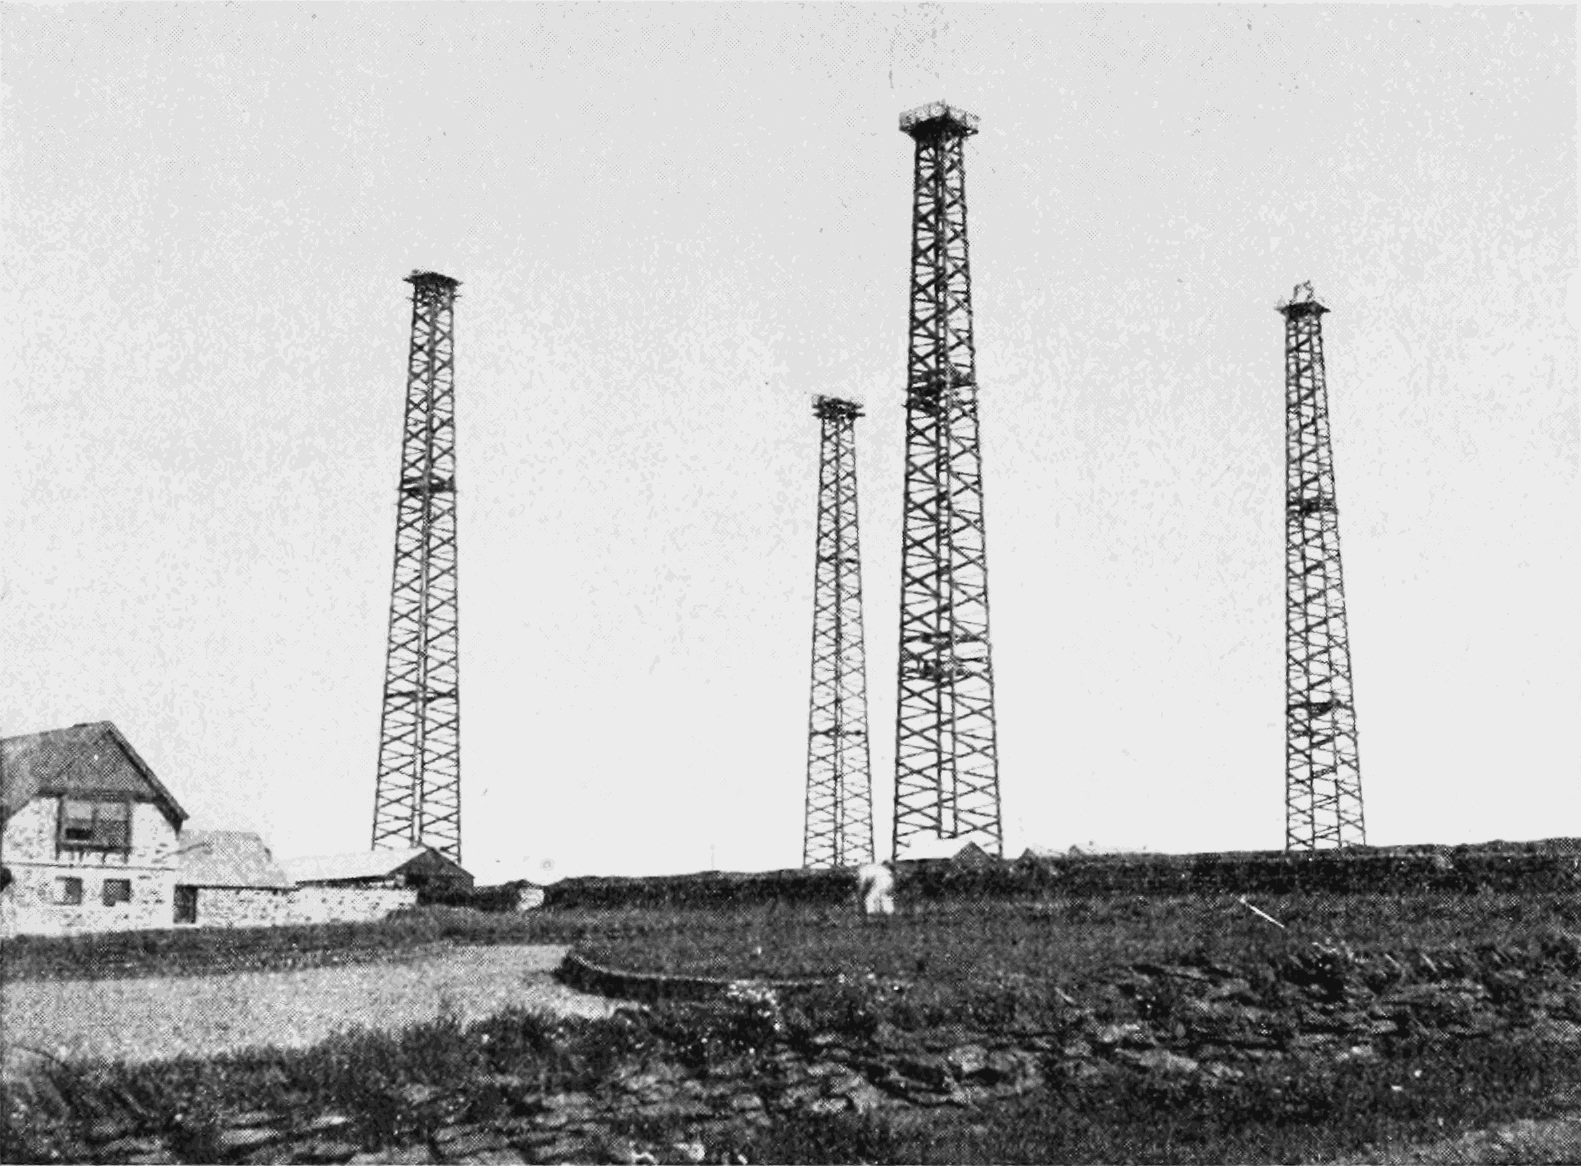 PSM V64 D160 Wooden towers supporting marconi aerial at cornwall england.png